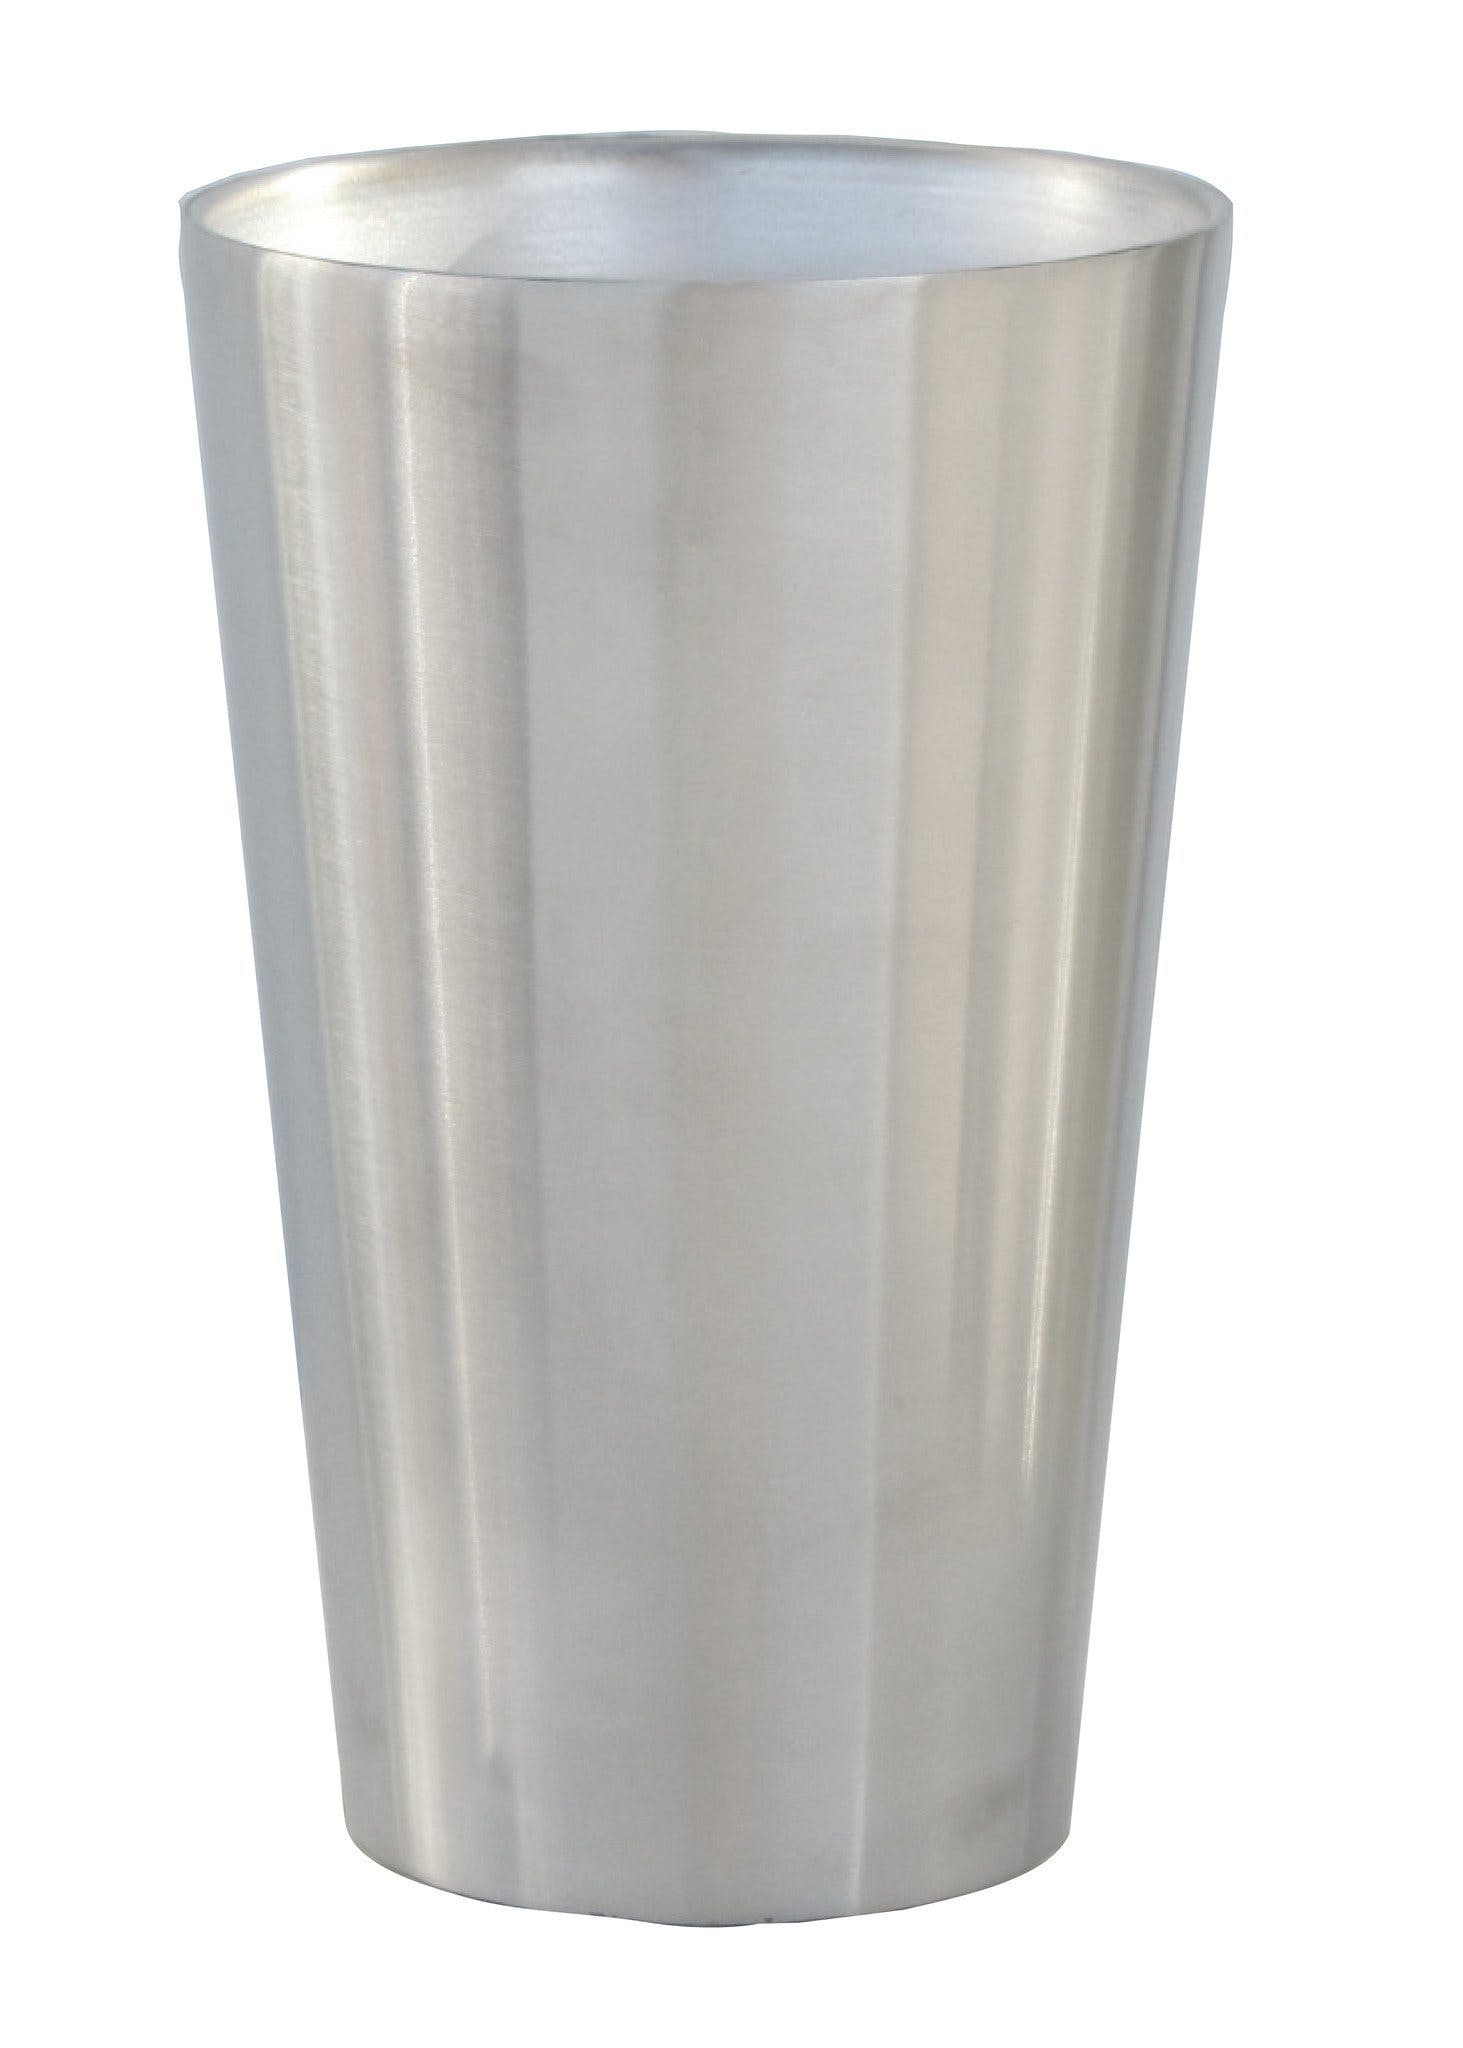 Stainless Brushed DBL Wall Tumbler 19 oz - sold by Clearwater Gear